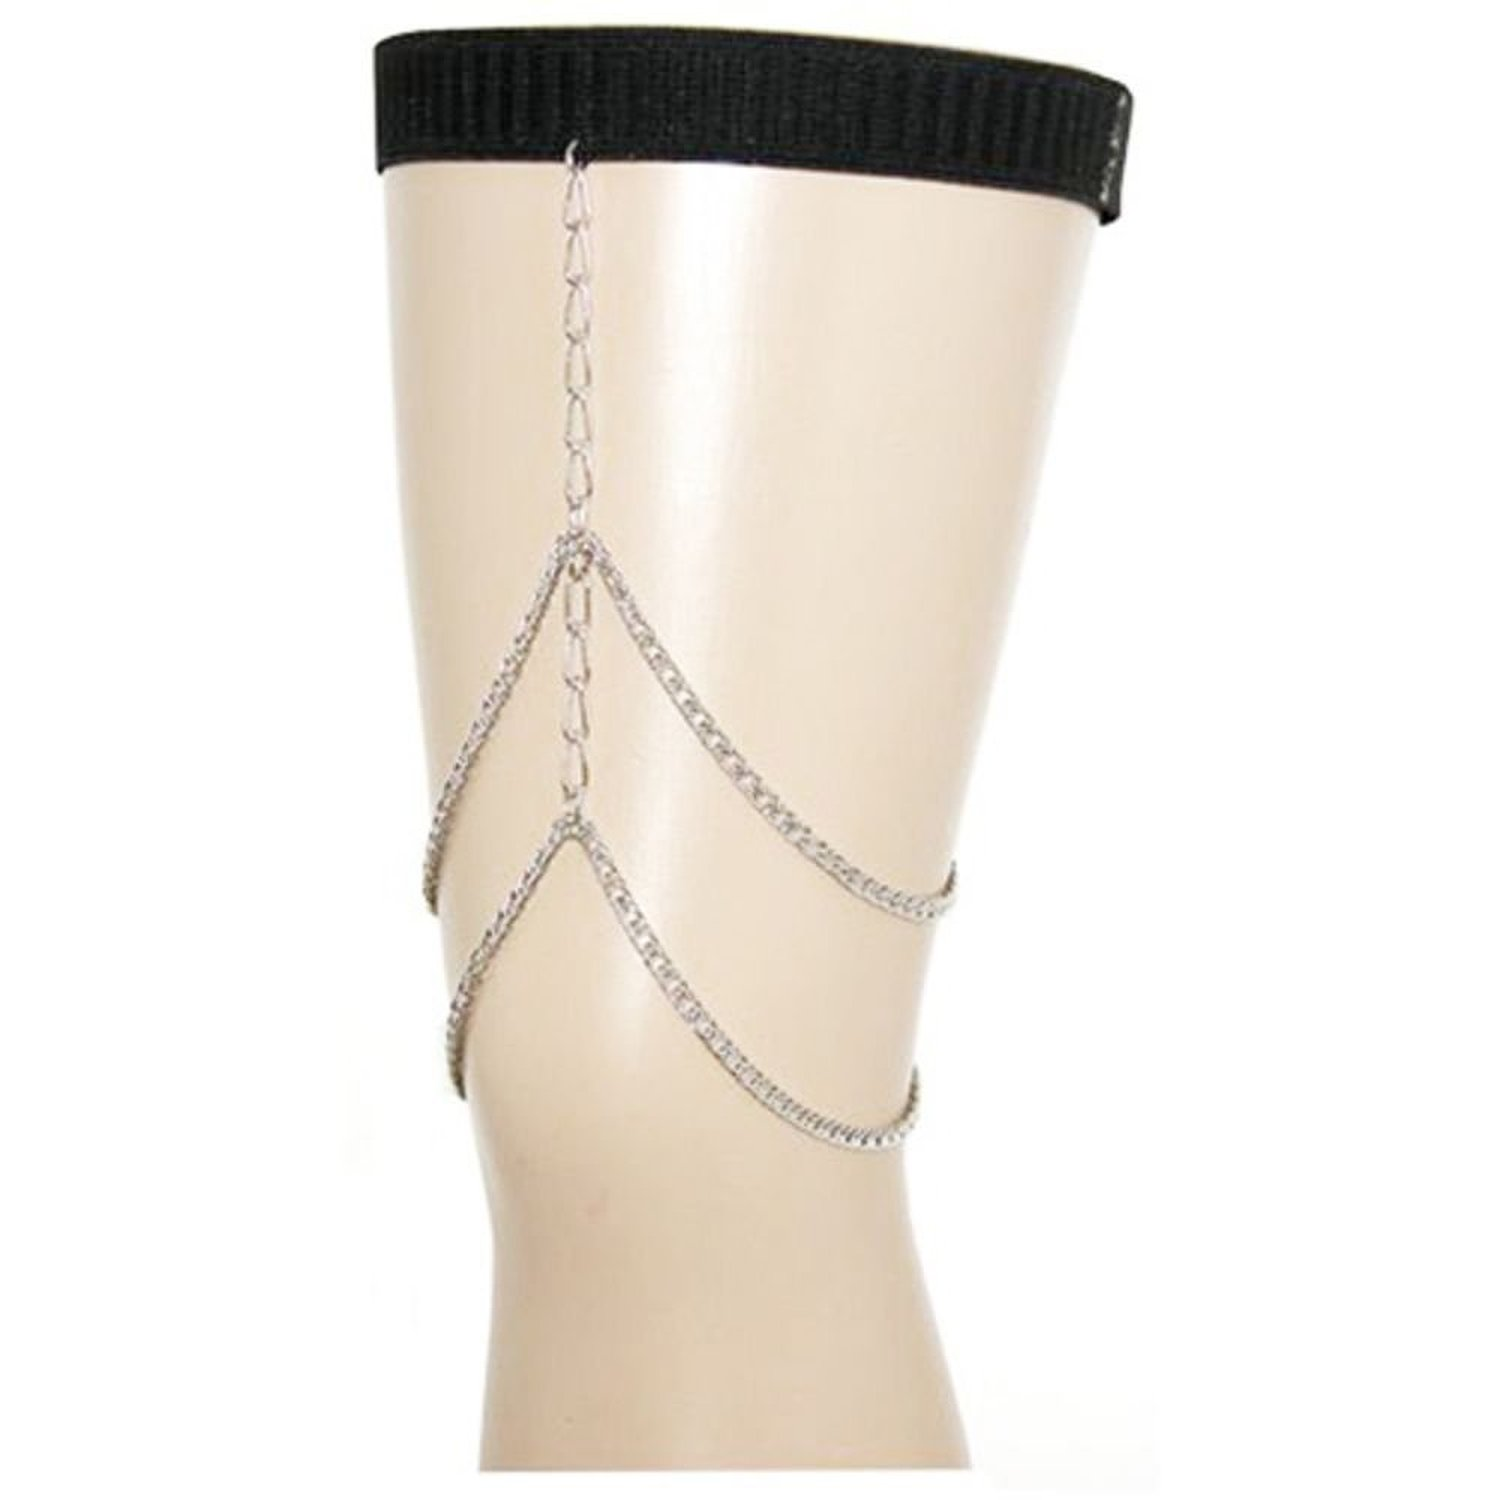 Amazon.com: adjustable harness chain leg jewelry on elastic band, ours alone, made in usa!, 19